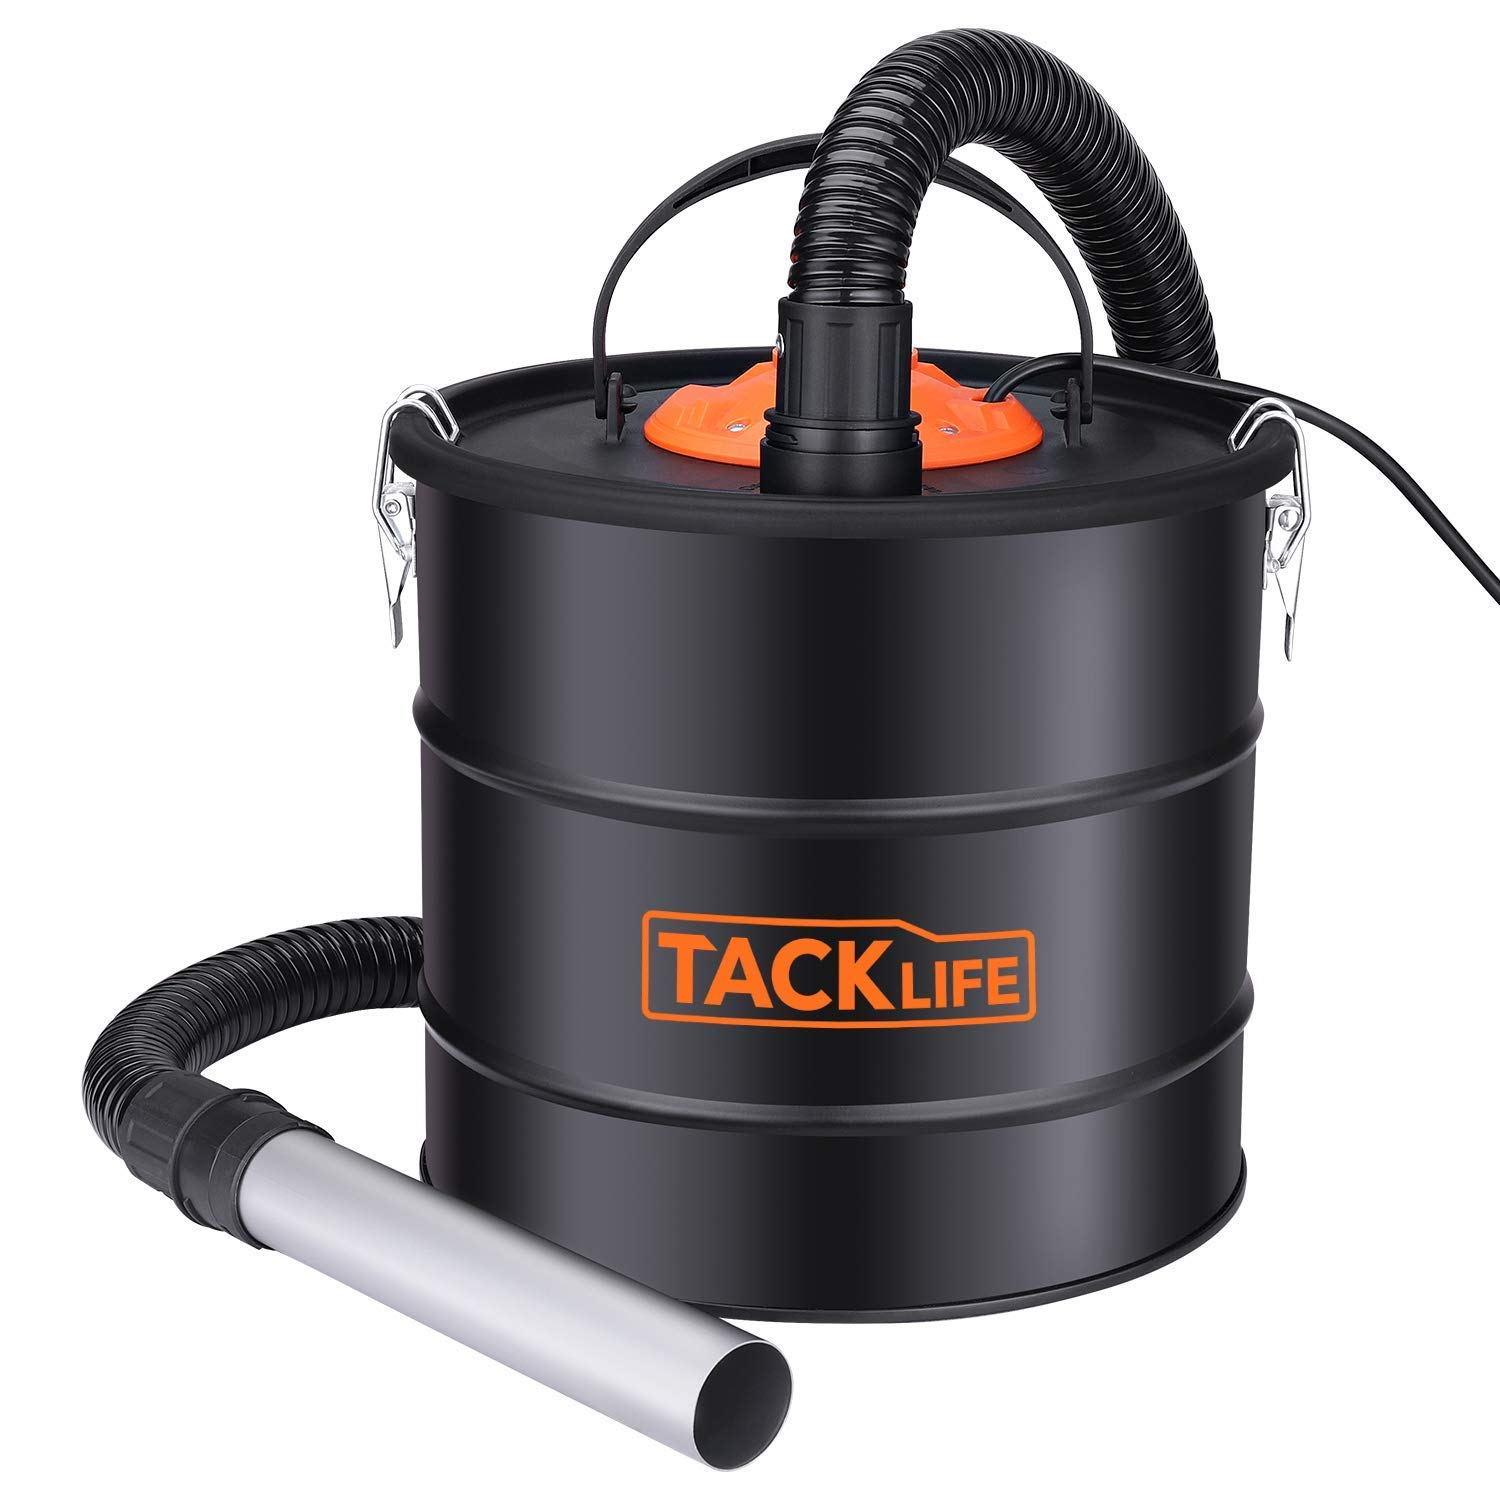 TACKLIFE 800W Ash Vacuum, 5-Gallon Ash Vacuum Cleaner, Blower/VAC 2 in 1, Double Filtration System for Pellet Stoves,BBQ Grills and Wood Stoves - PVC03A by TACKLIFE